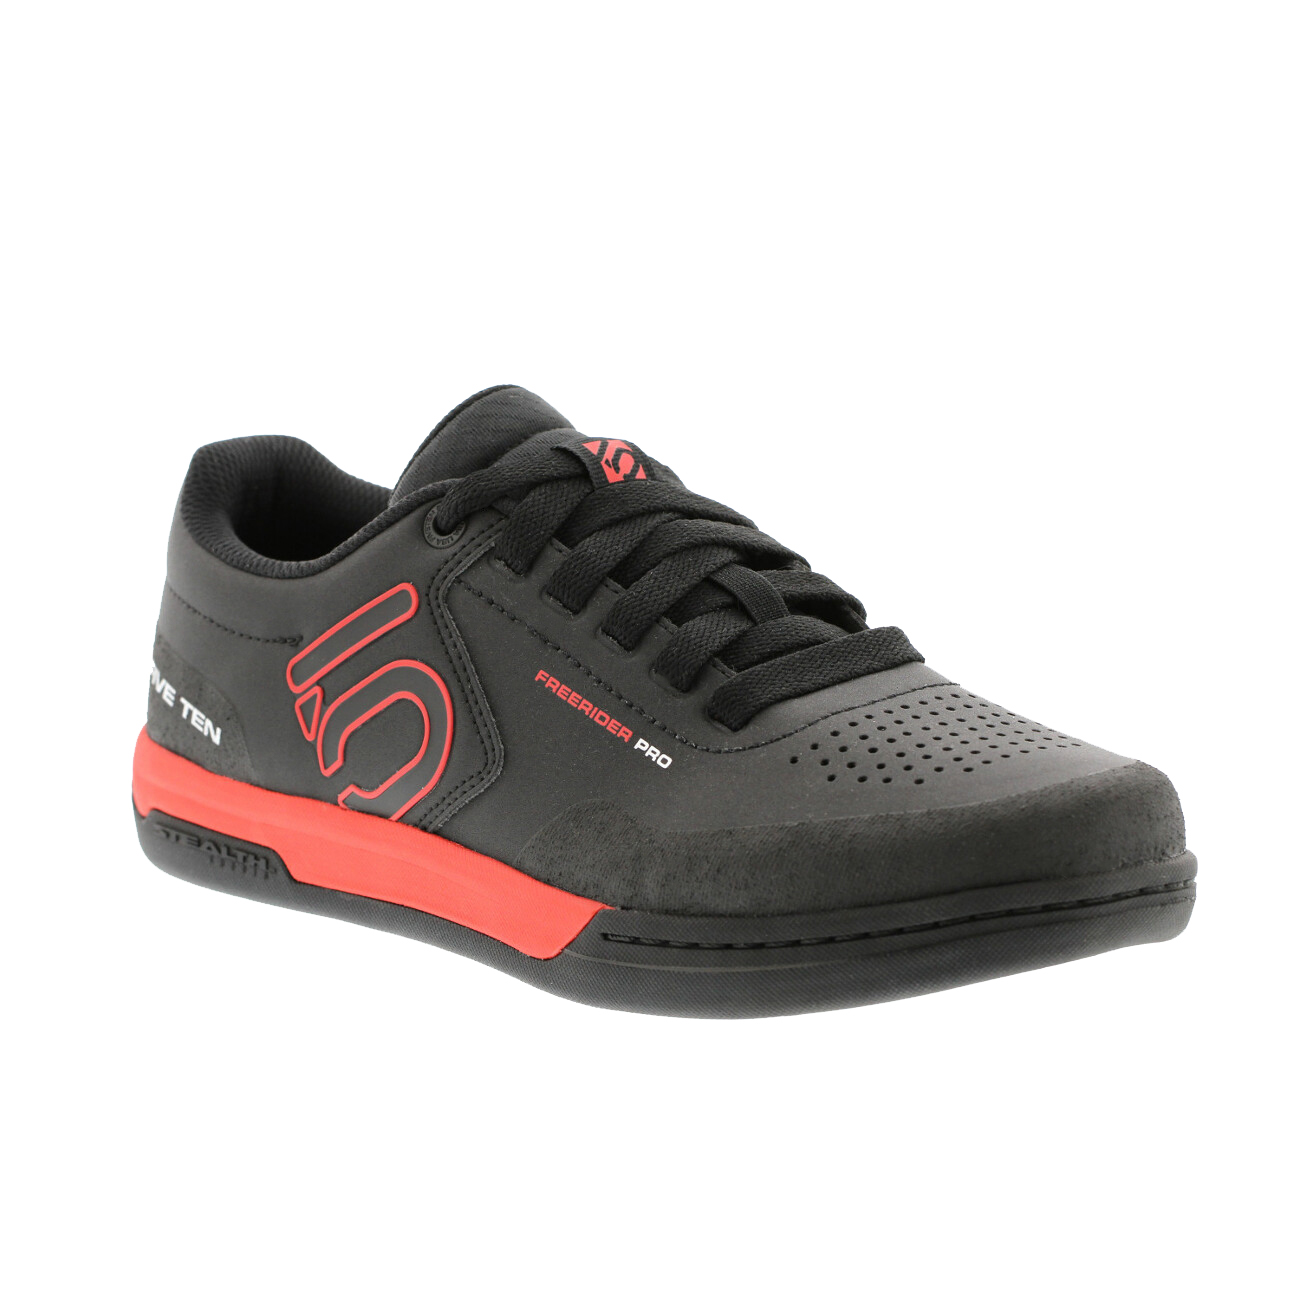 Five Ten Freerider Shoes For Sale